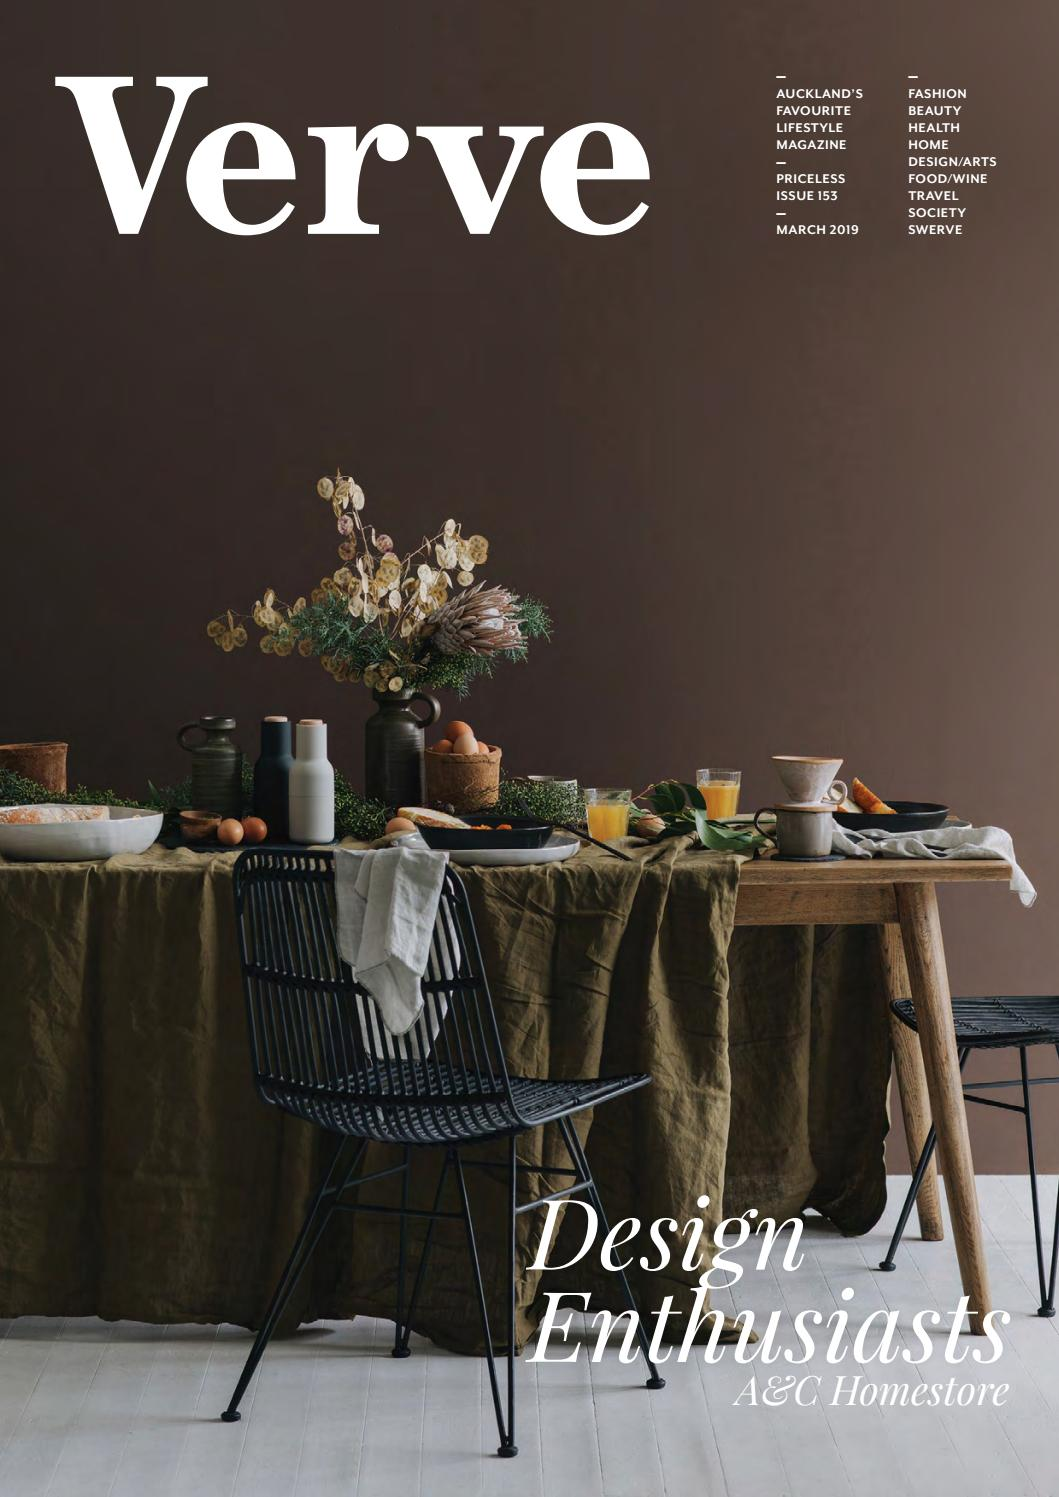 verve march 2019 issue 153 by verve magazine issuuverve march 2019 issue 153